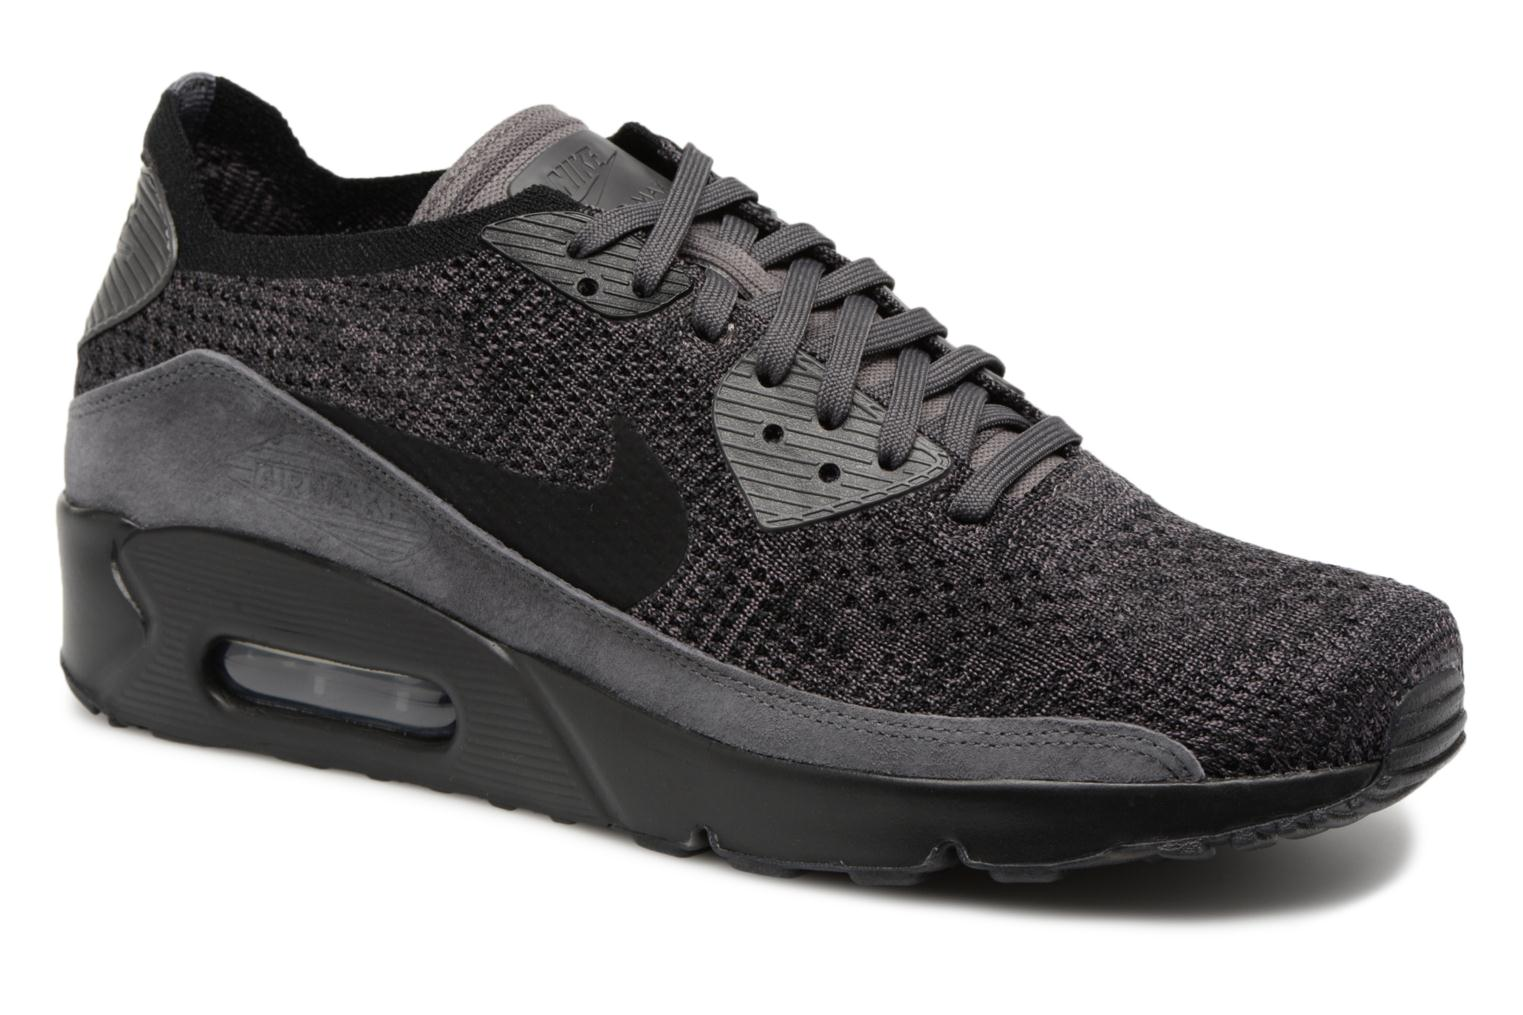 Pale Grey/Pale Grey-Armory Navy Nike Air Max 90 Ultra 2.0 Flyknit (Beige)